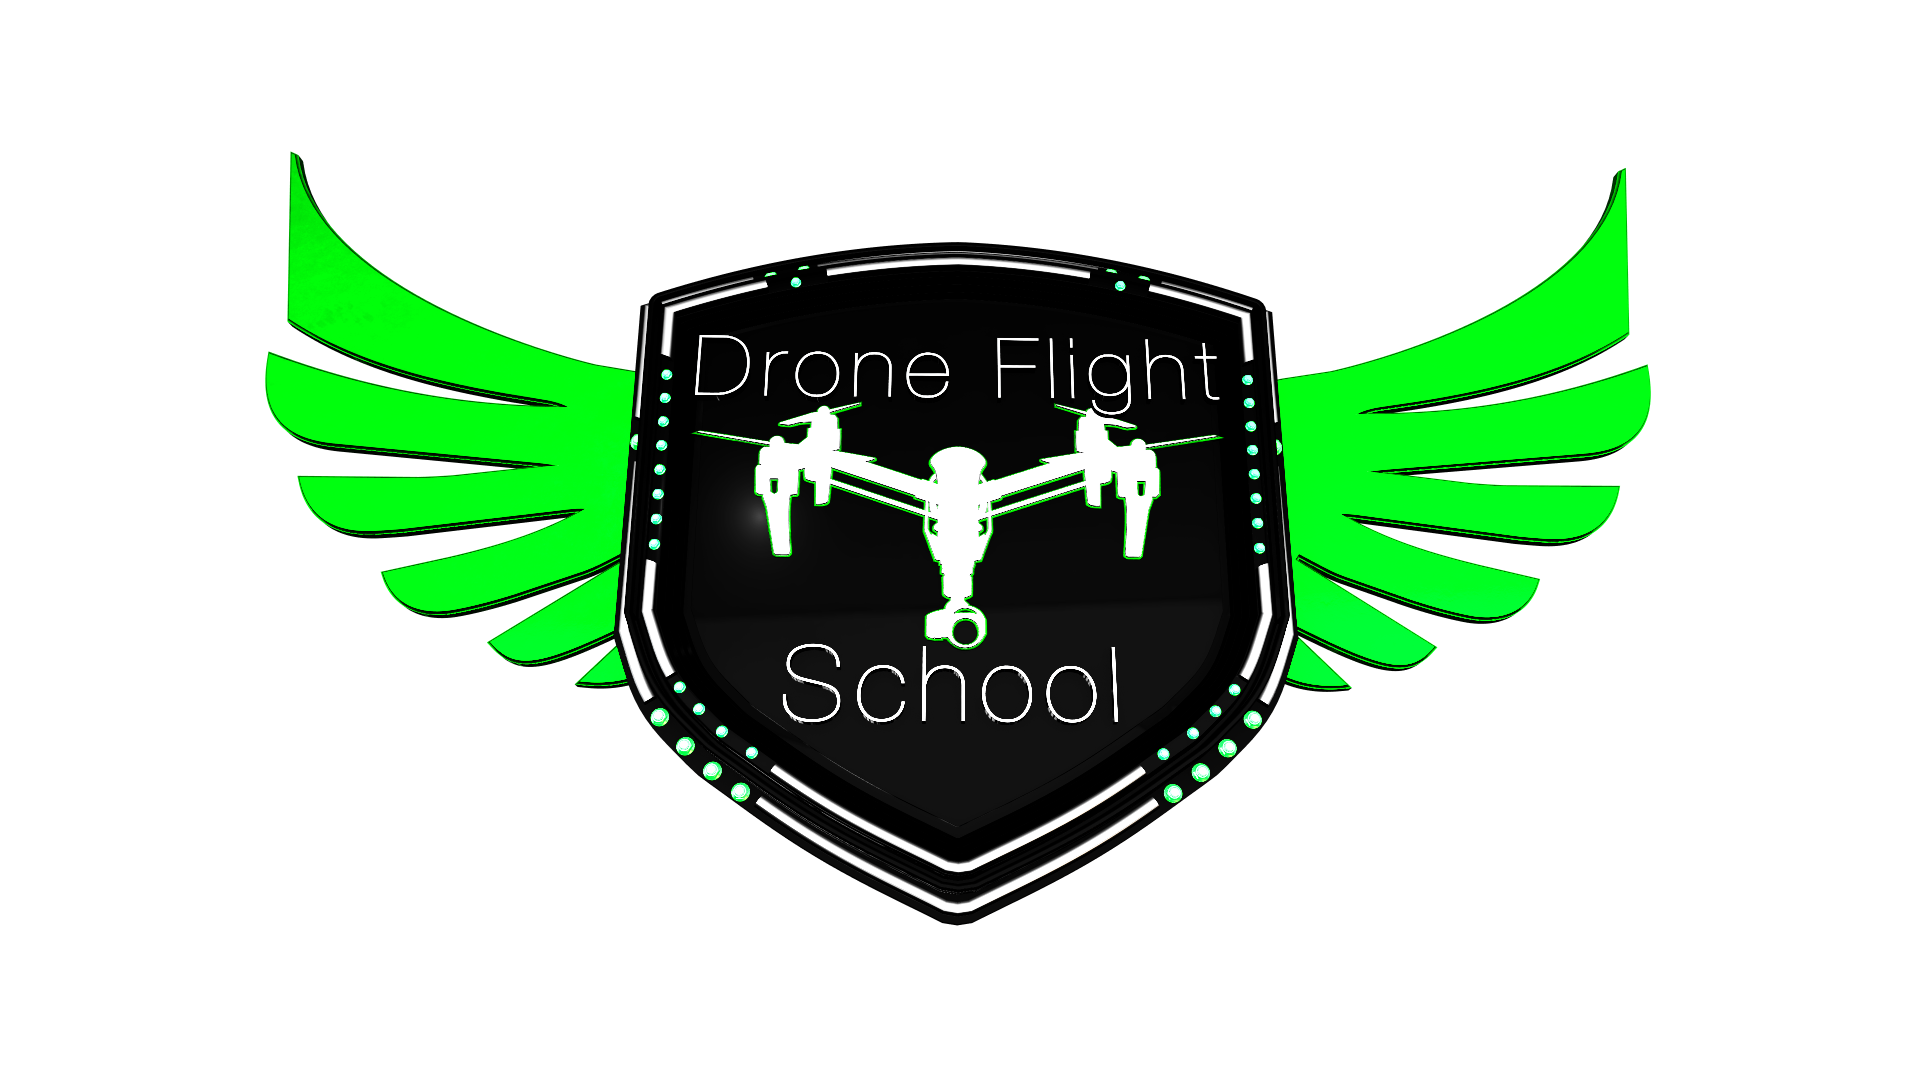 The Drone Flight School